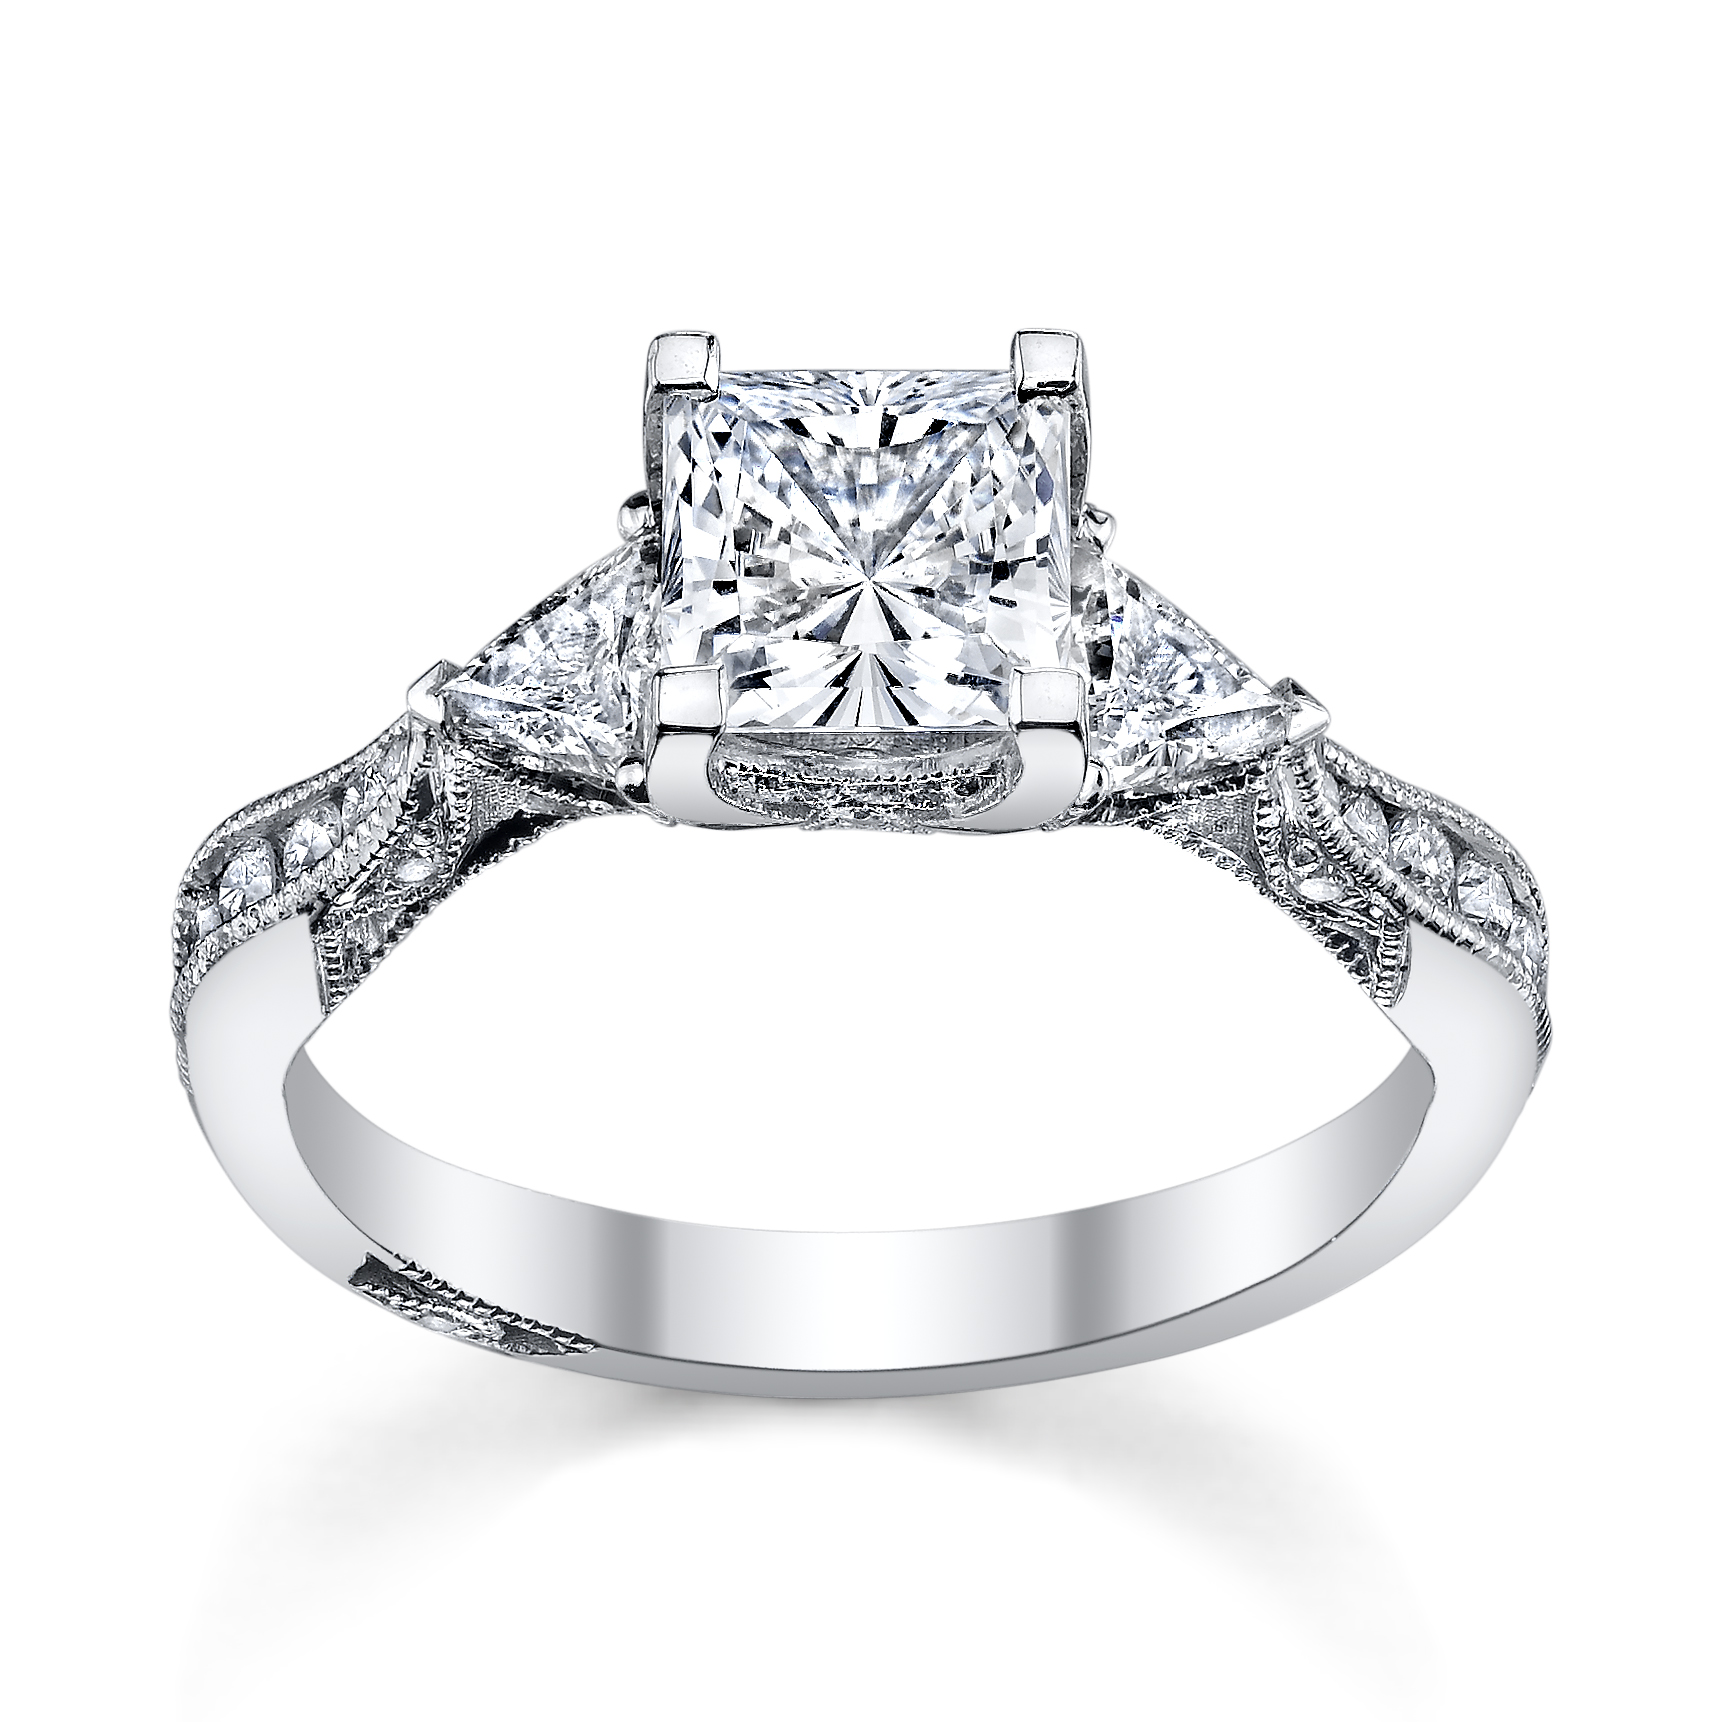 Tacori Princess Cut Engagement Ring With Trillion Cut Stones Available At  Robbinsbrothers